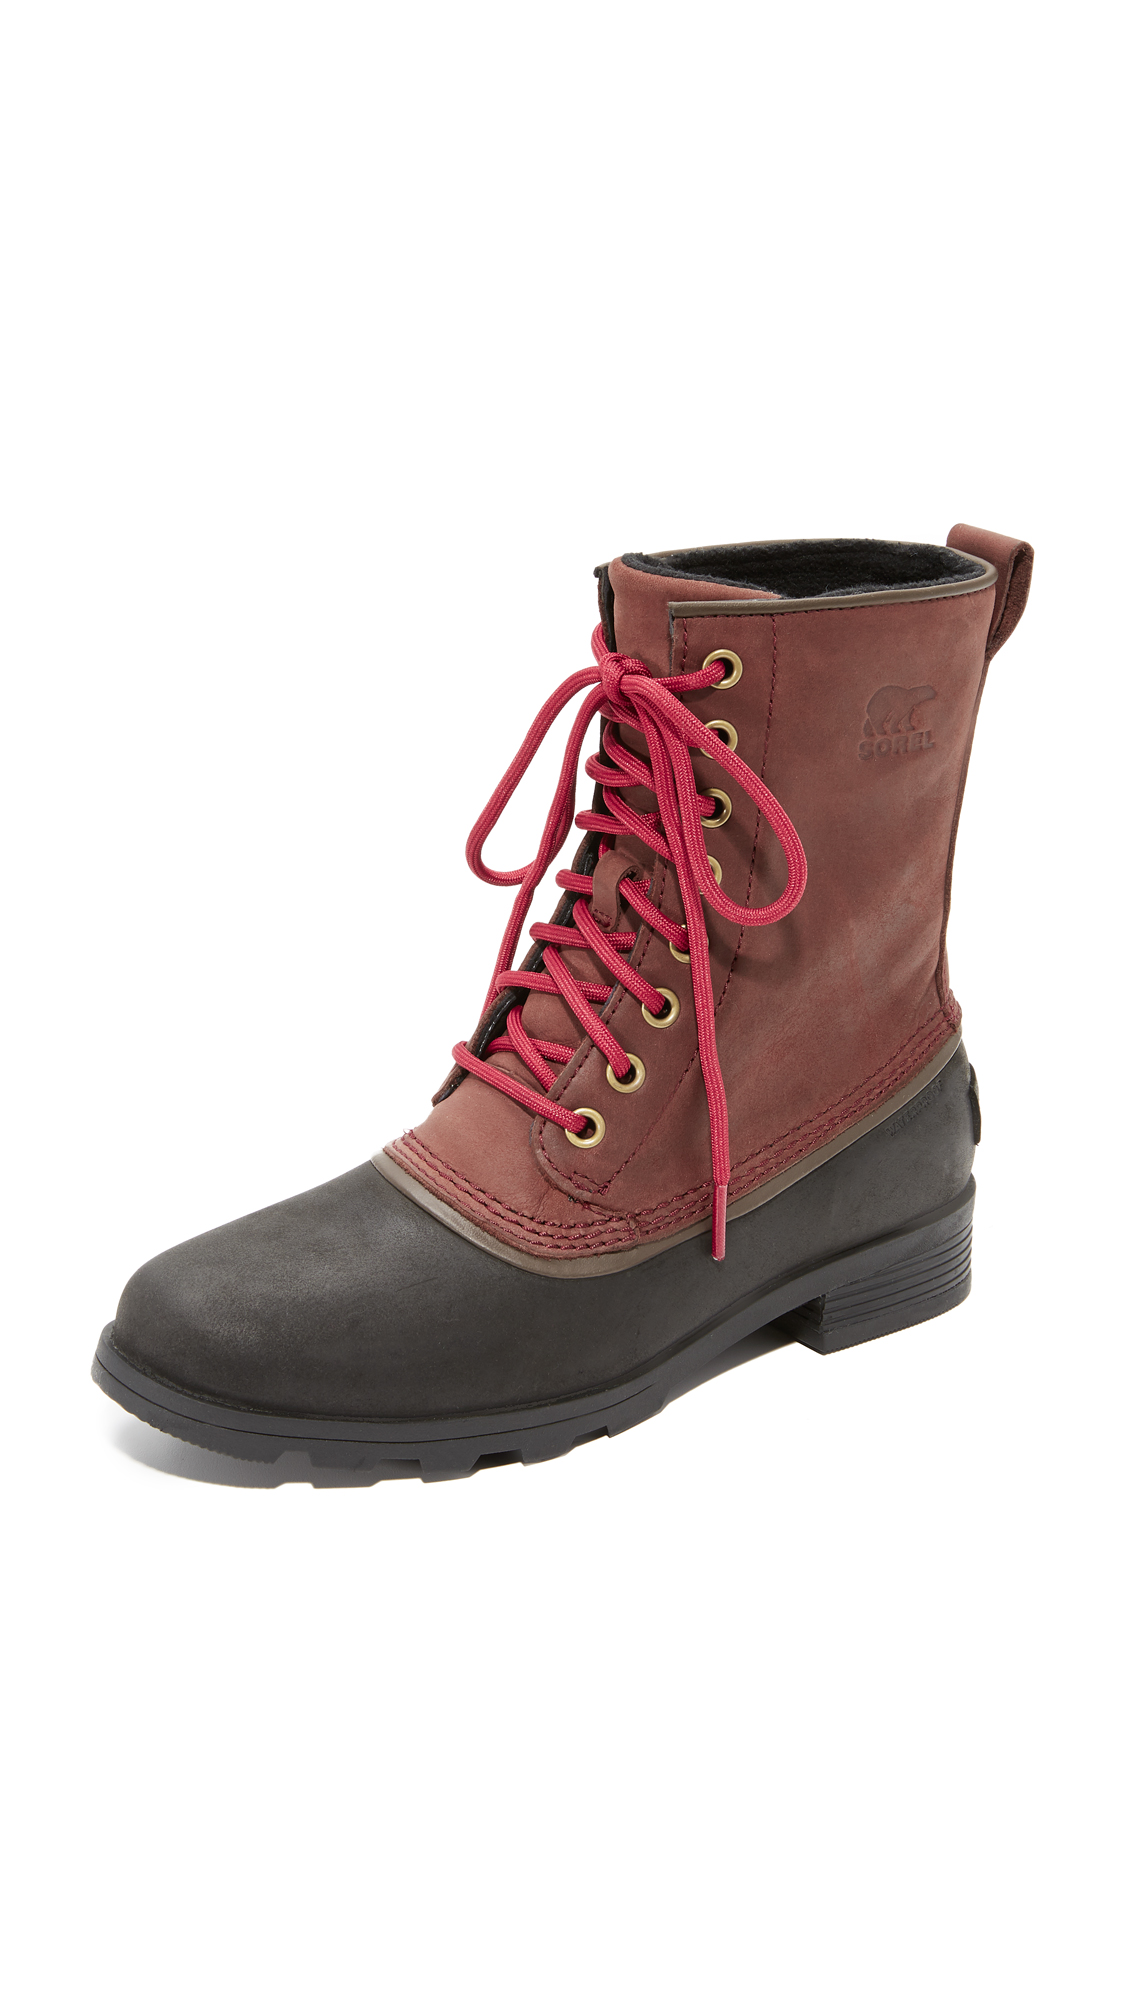 Sorel Emelie 1964 Booties - Redwood/Black